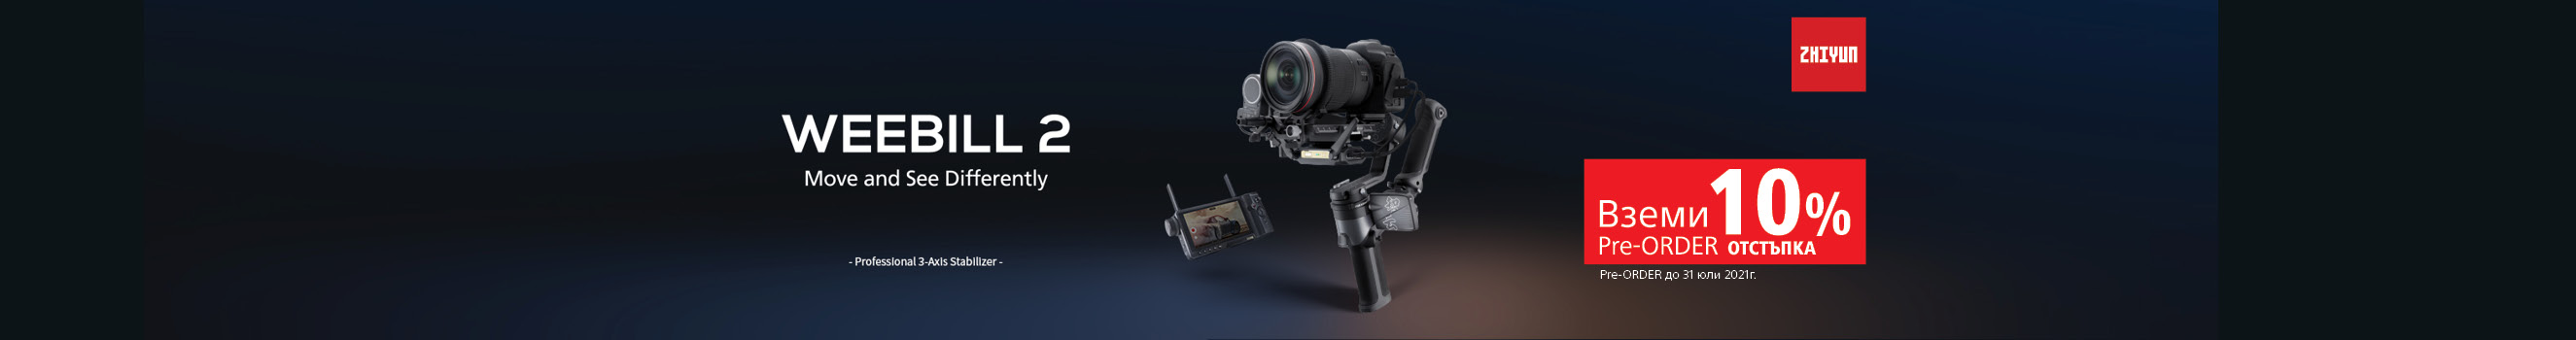 Zhiyun Weebill 2 Gimbal 10% Off Preorder in PhotoSynthesis